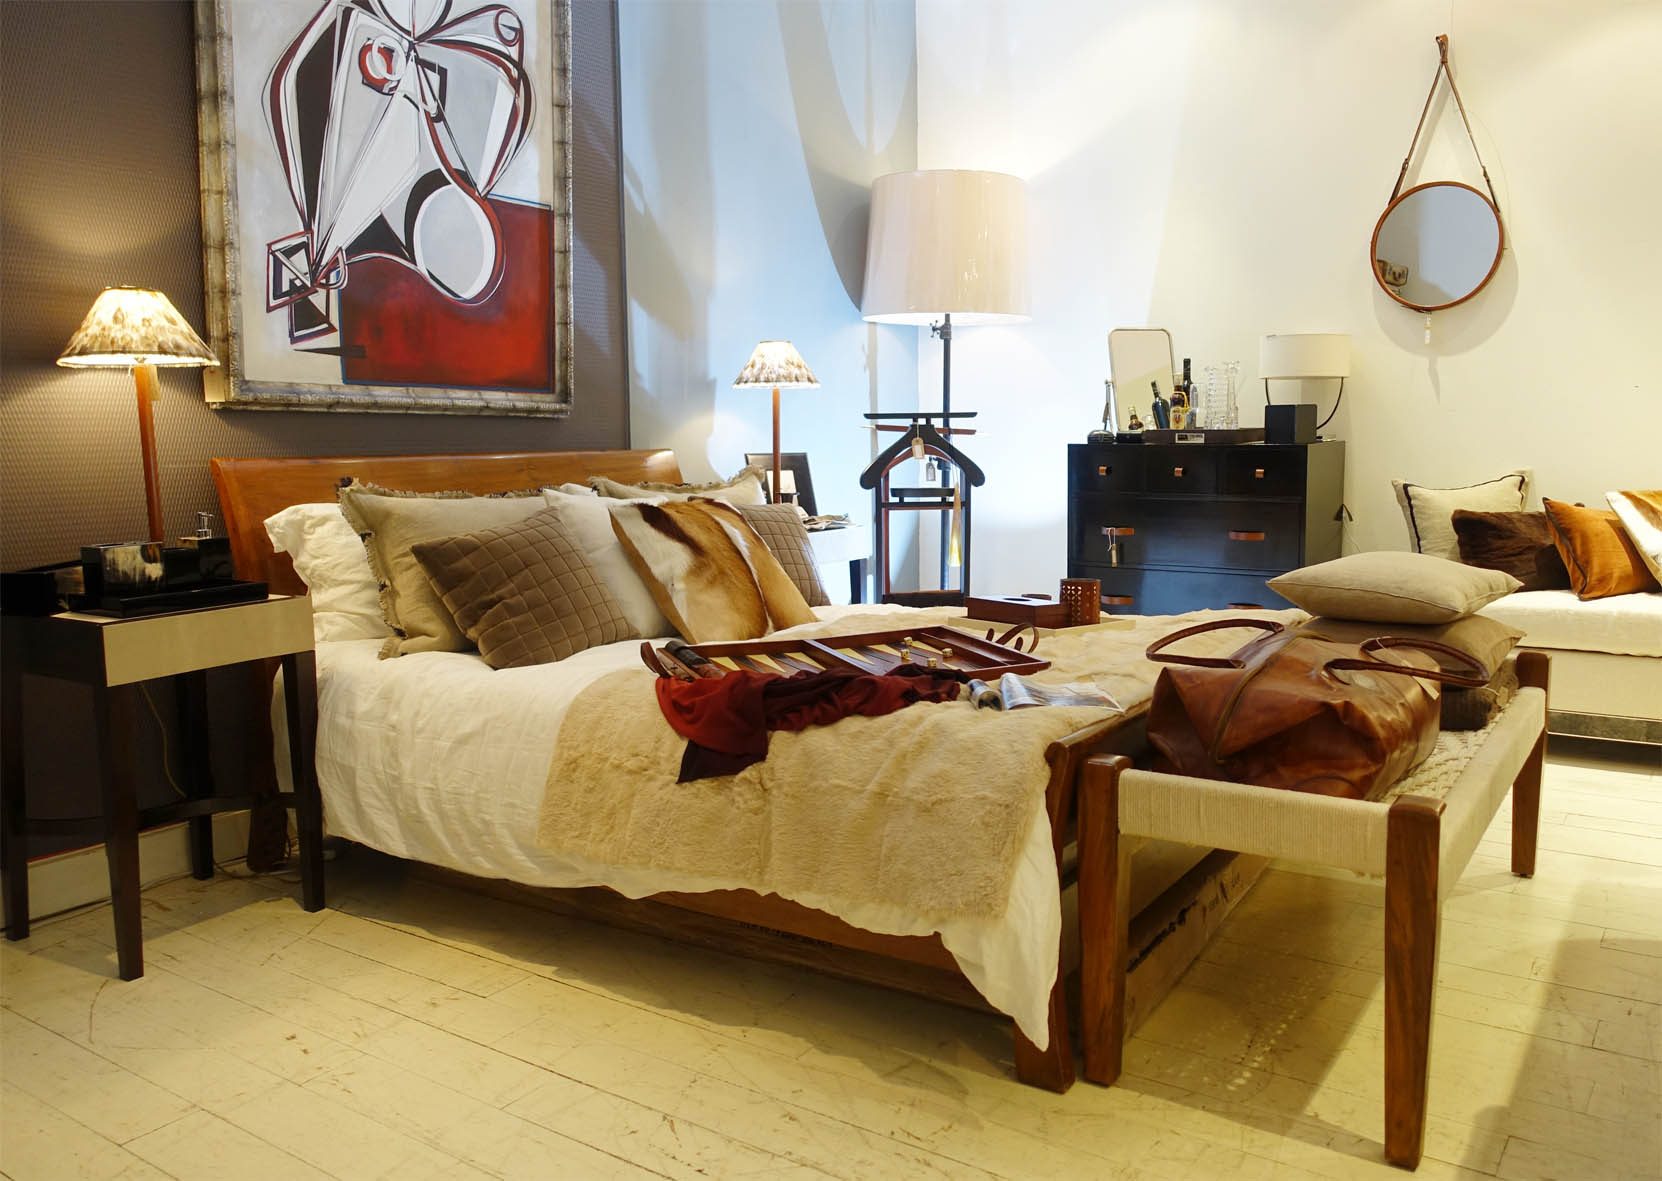 This gorgeous bedroom set would not be out of place in a top hotel. I particularly love Mufti's stunning collection of leather-bound chests of drawers.